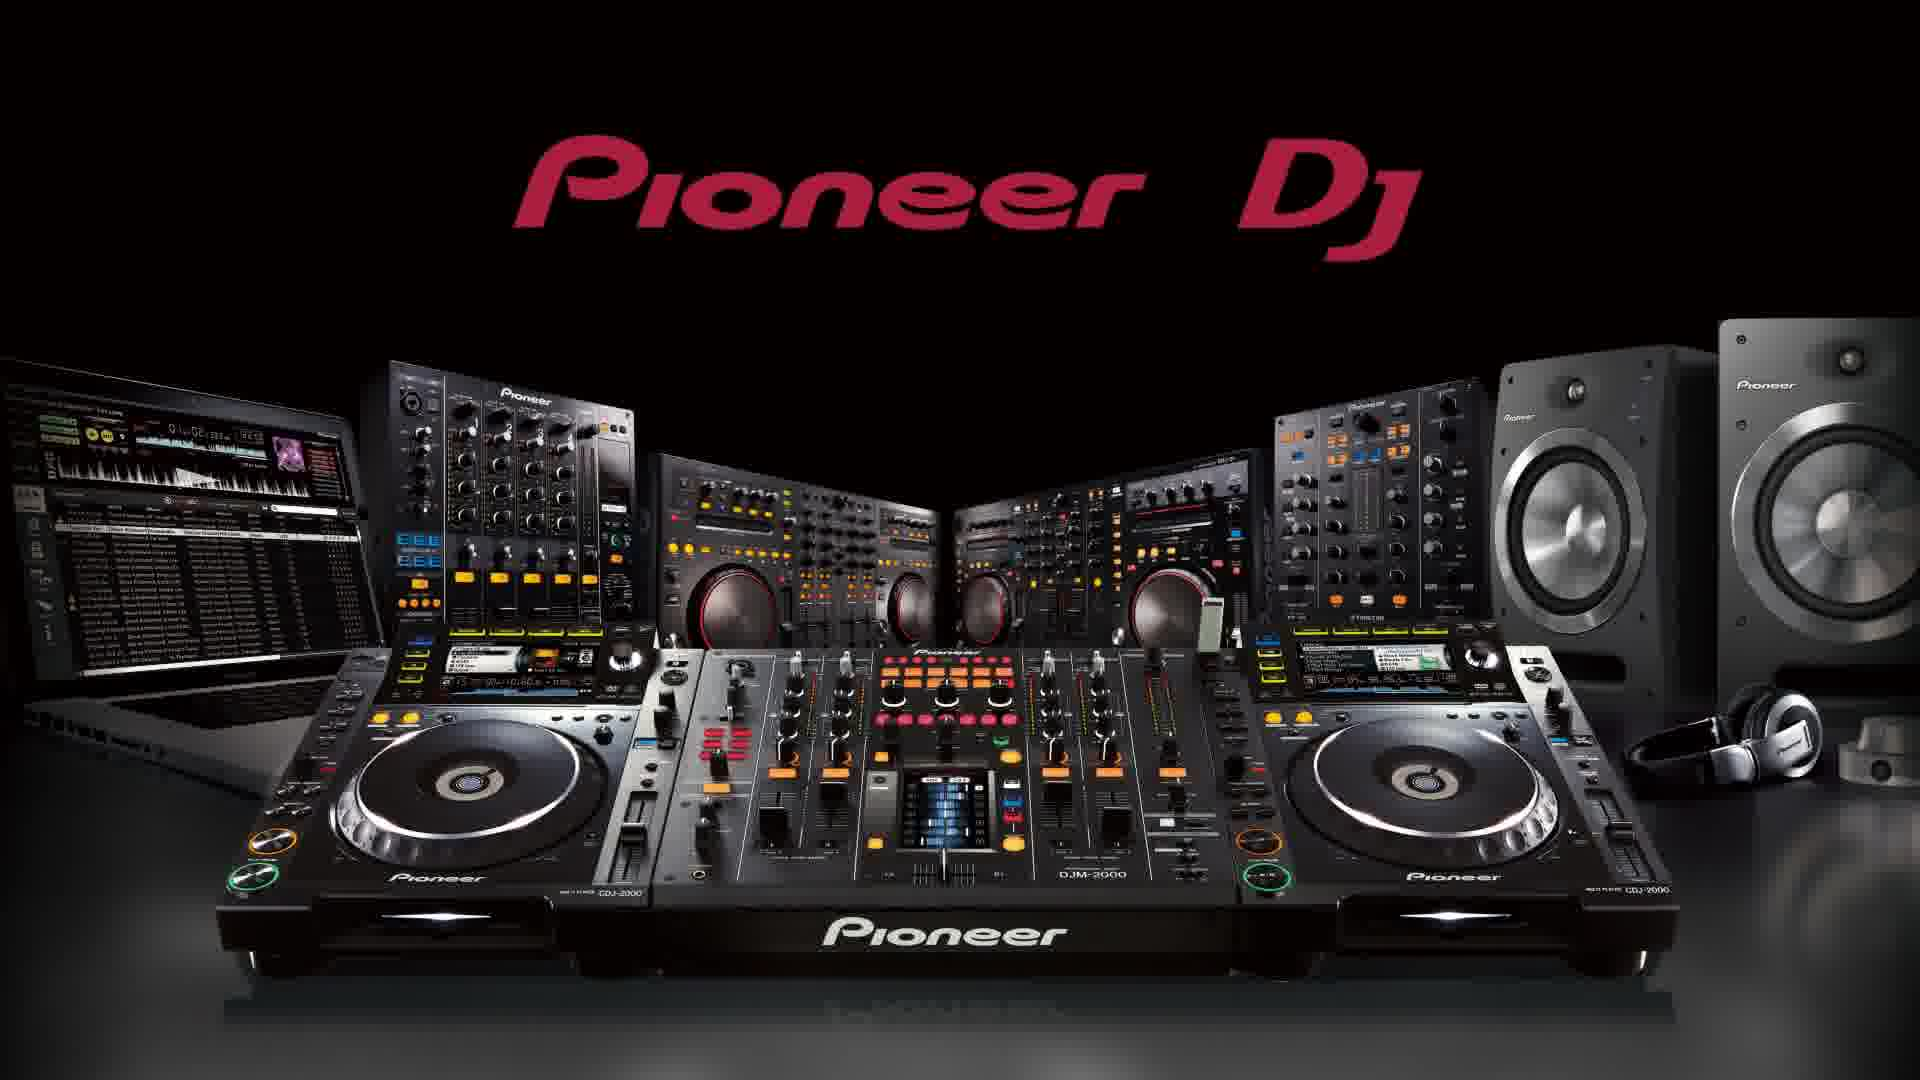 pioneer dj wallpapers wallpaper cave. Black Bedroom Furniture Sets. Home Design Ideas